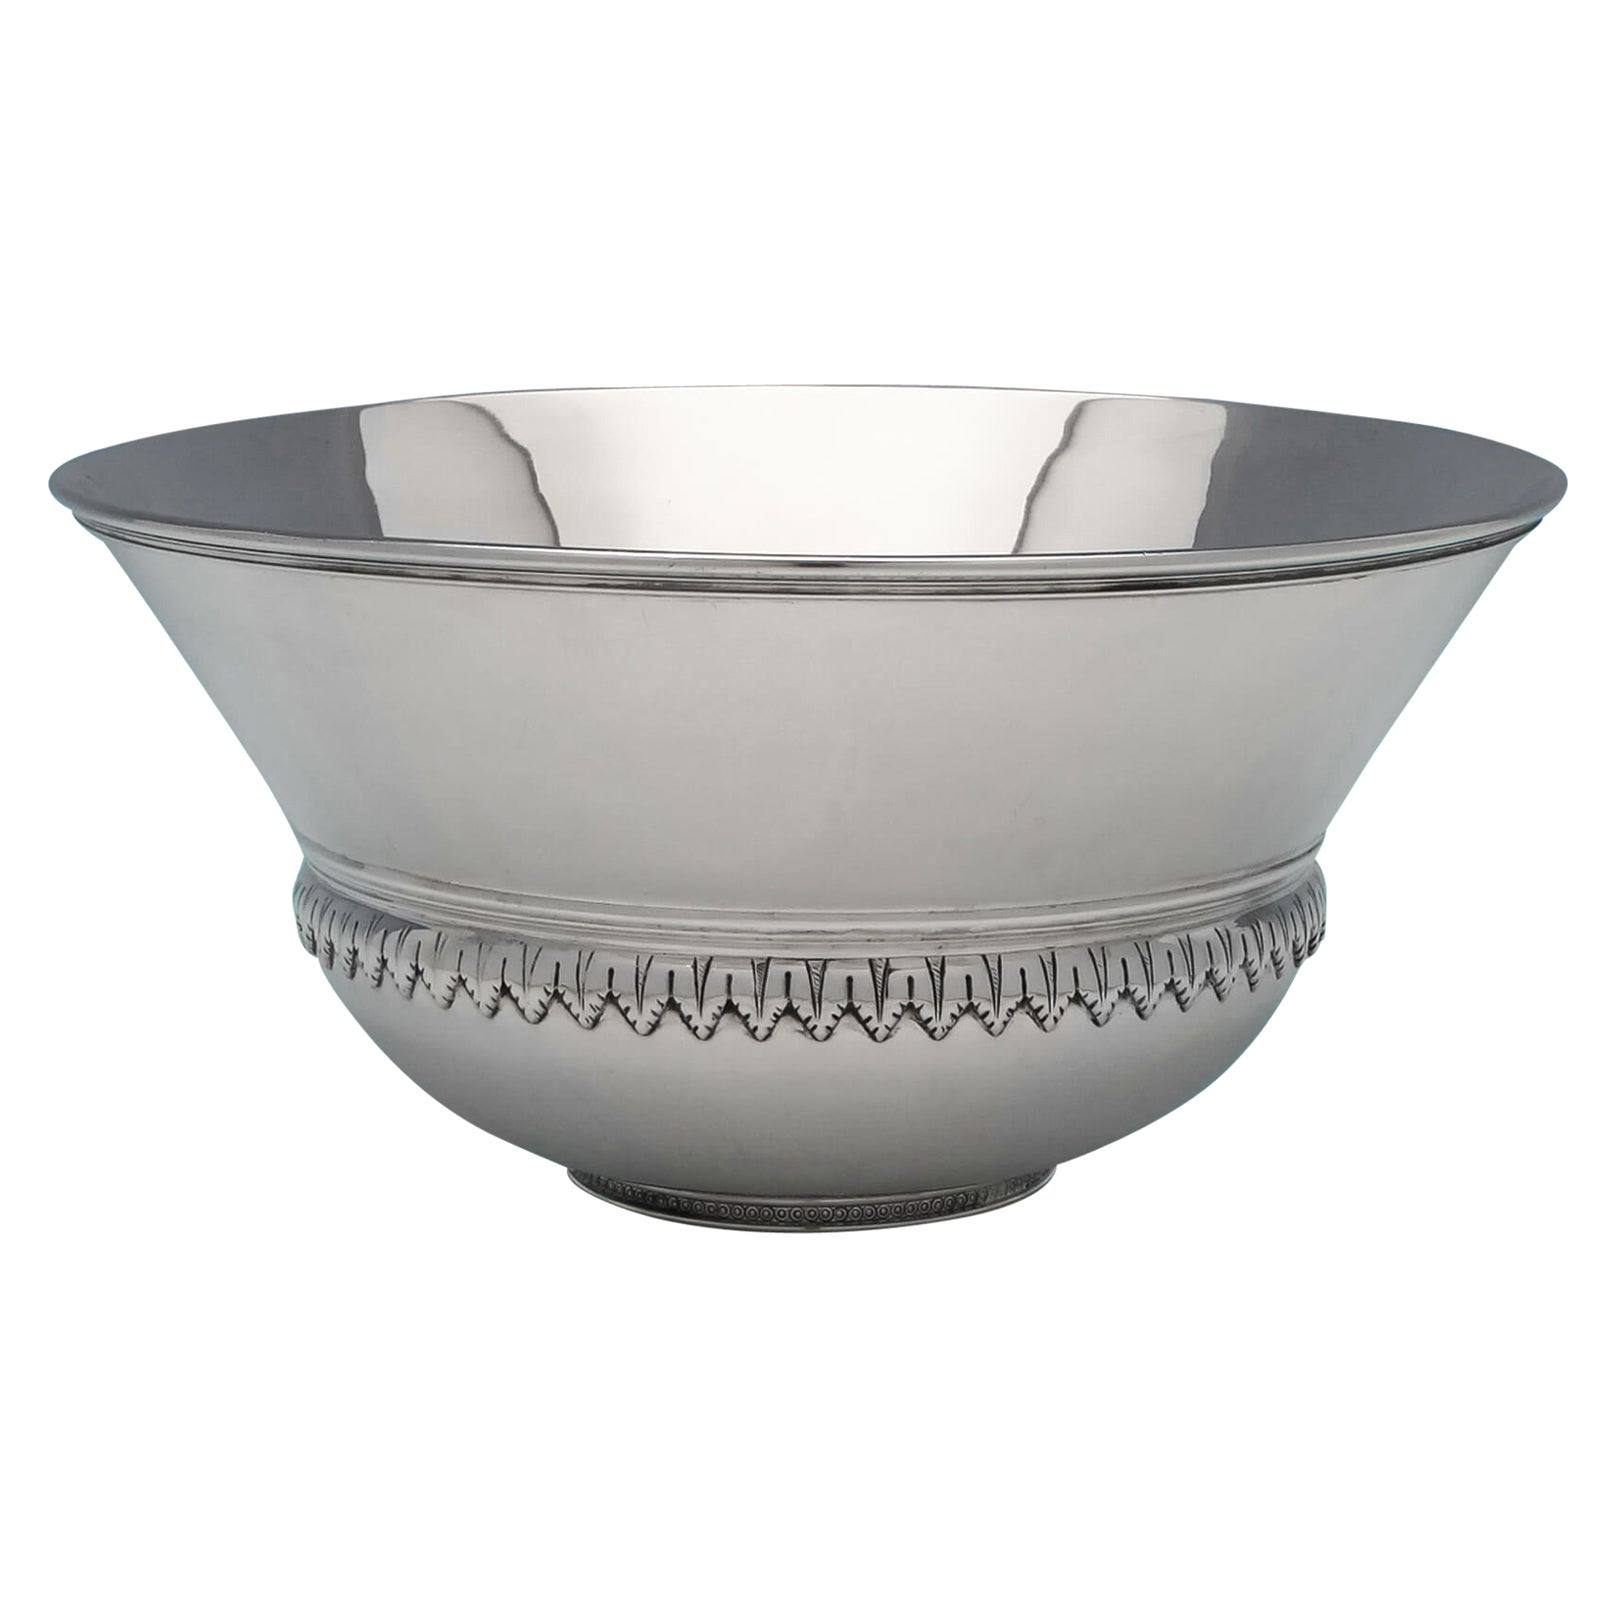 Art Deco Sterling Silver 'Mazer' Bowl by Richard Comyns in 1936